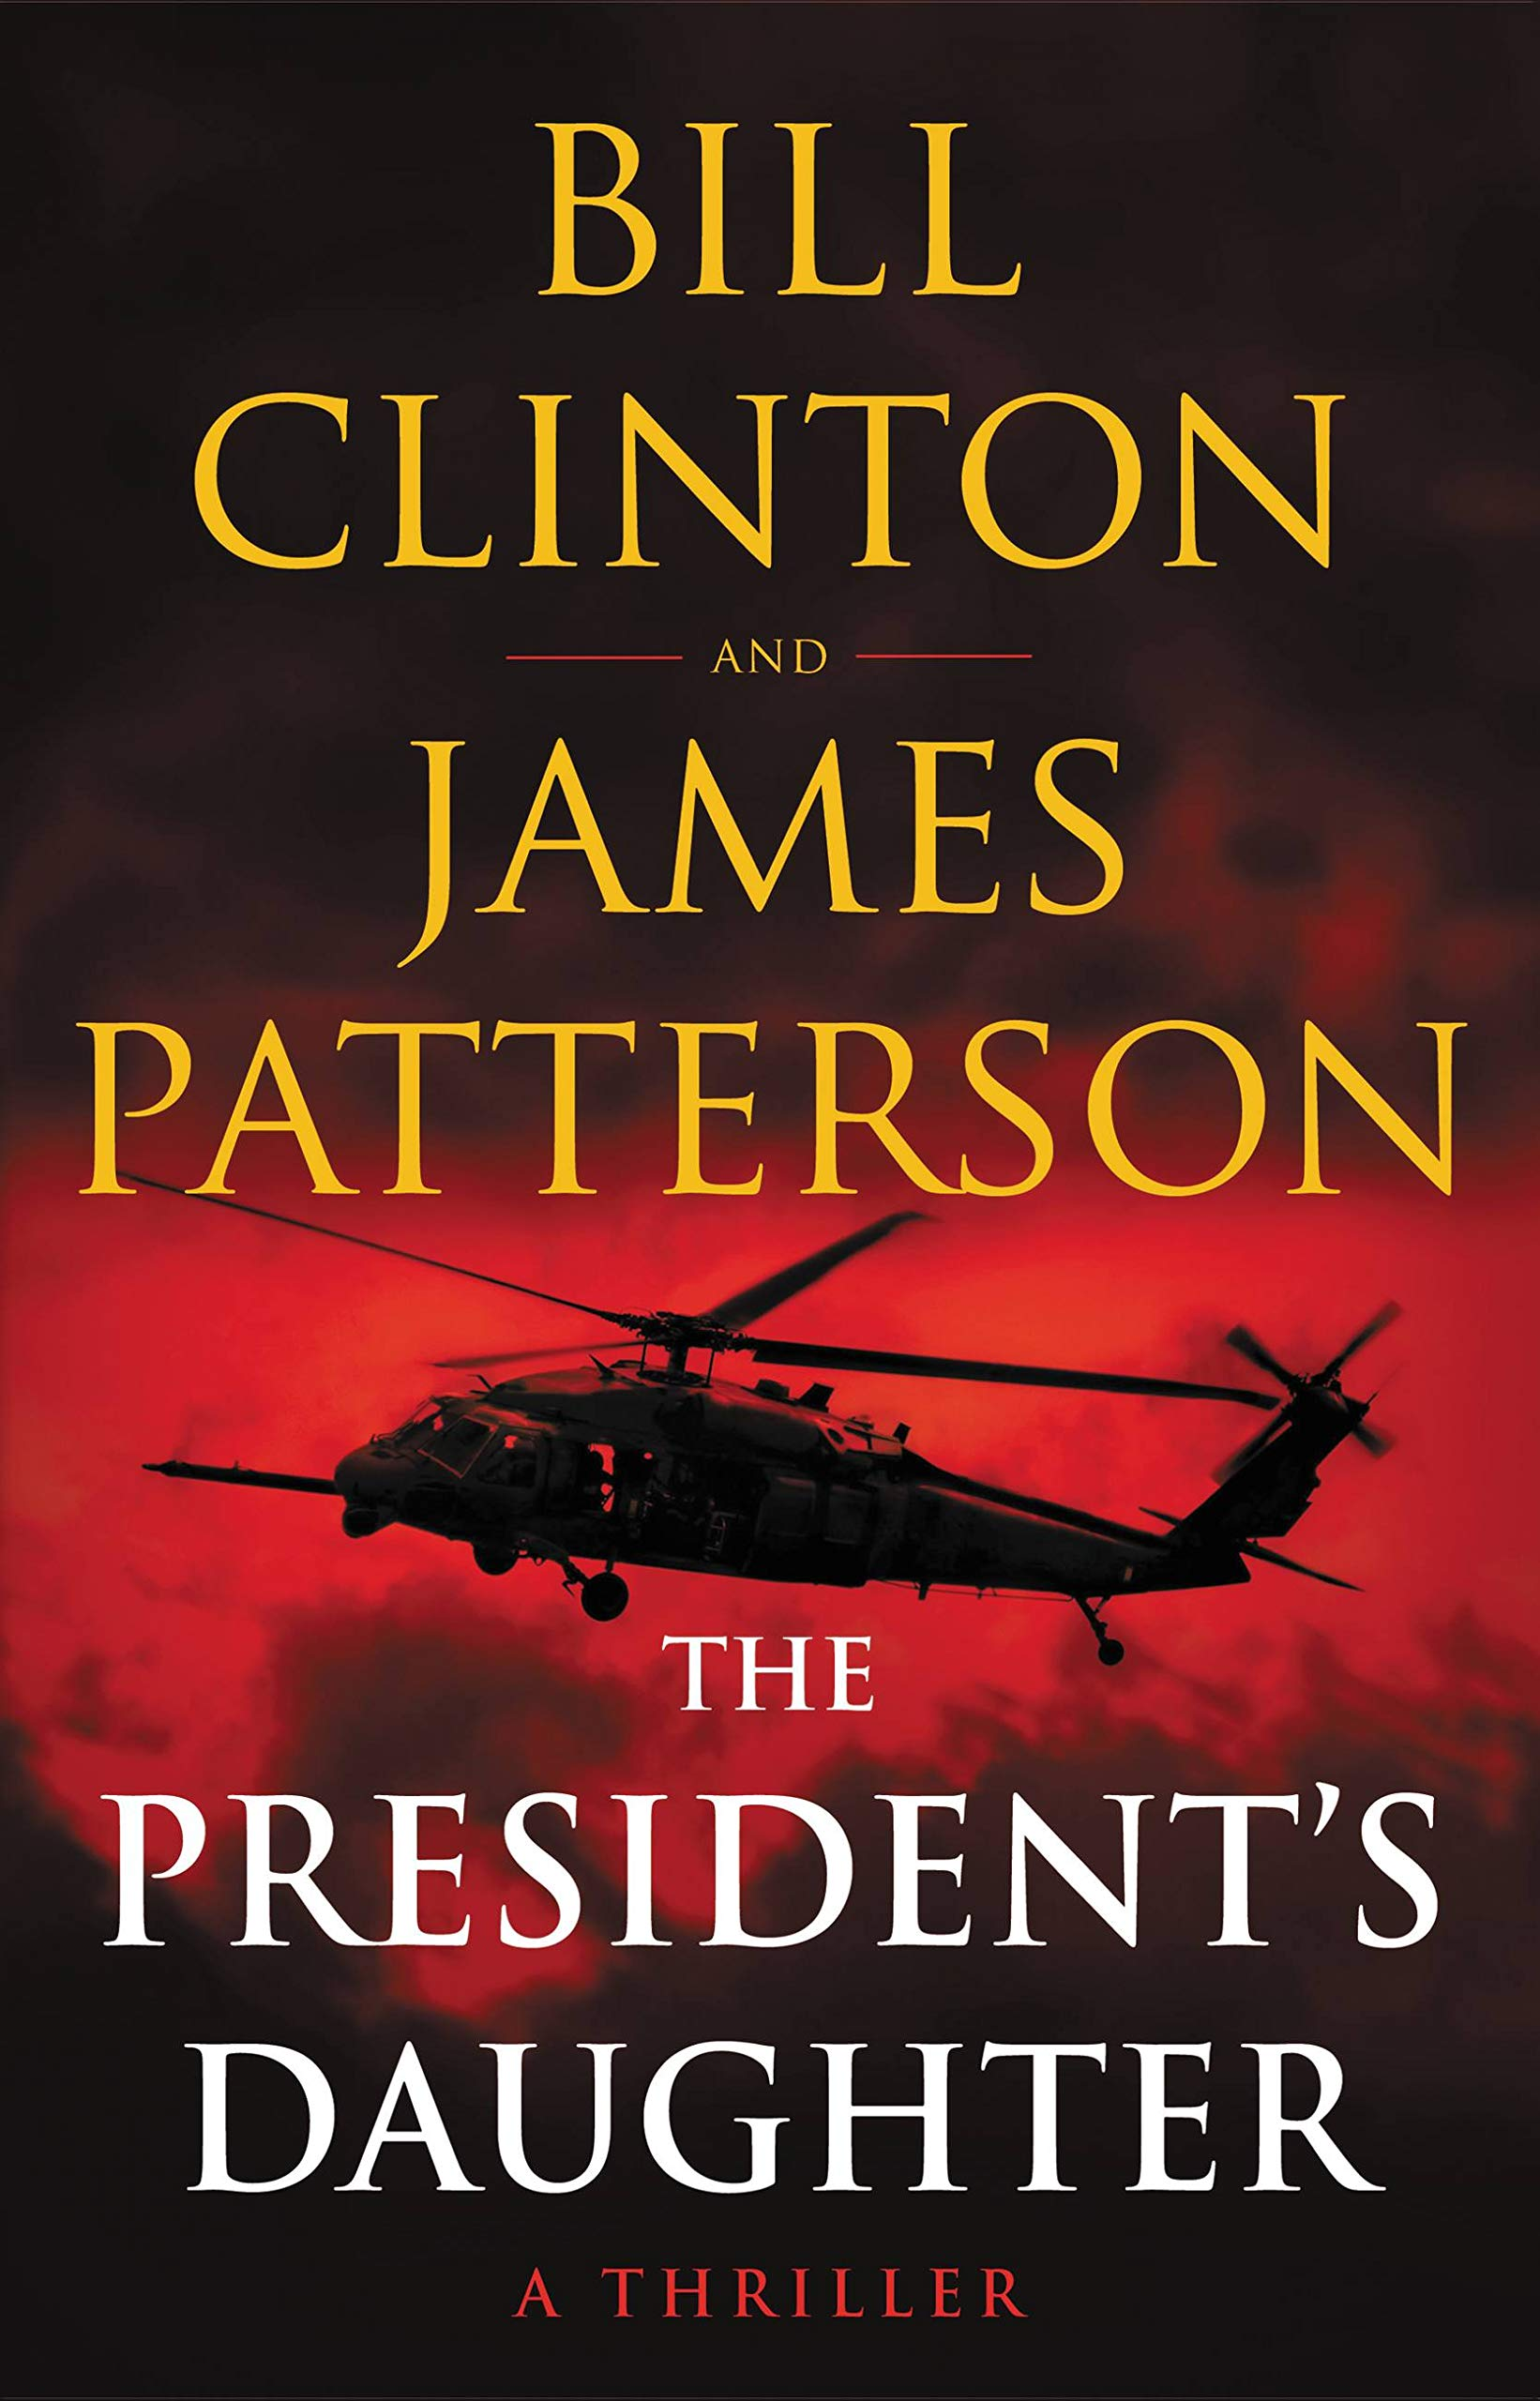 Amazon.com: The President's Daughter: A Thriller: 9780316540711: Patterson, James, Clinton, Bill: Books